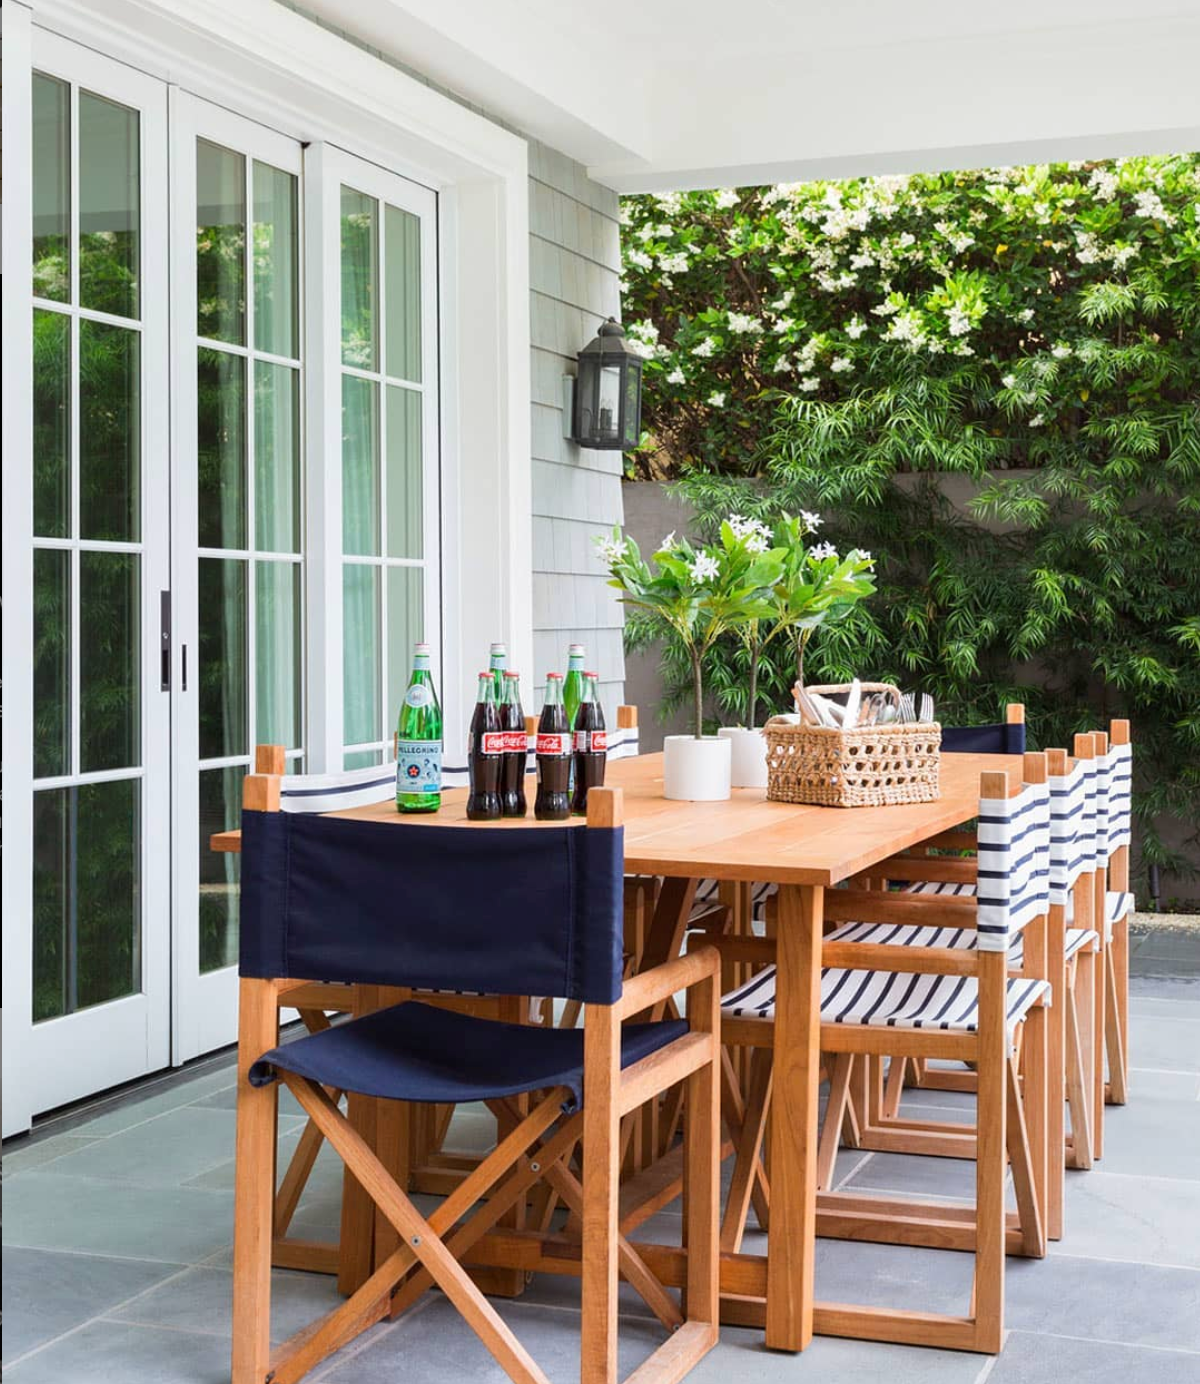 Looking forward to days ahead when all these chairs can be filled with friends and family!  Credits: @jkurtzdesign; 📸: @amybartlam; 💡: @HinkleyLighting Anchorage #stayathome #alonetogether #lightingdesign #outdoorliving #hinkleylighting #hinkleystyle #lighting #outdoorlighting #outdoorliving #outdoordecor #outdoordesign #outdoorinspo #outdoorspaces #outdooroasis #patiodecor #patiodesign #patioinspo #patios #exteriorenvy #exteriors